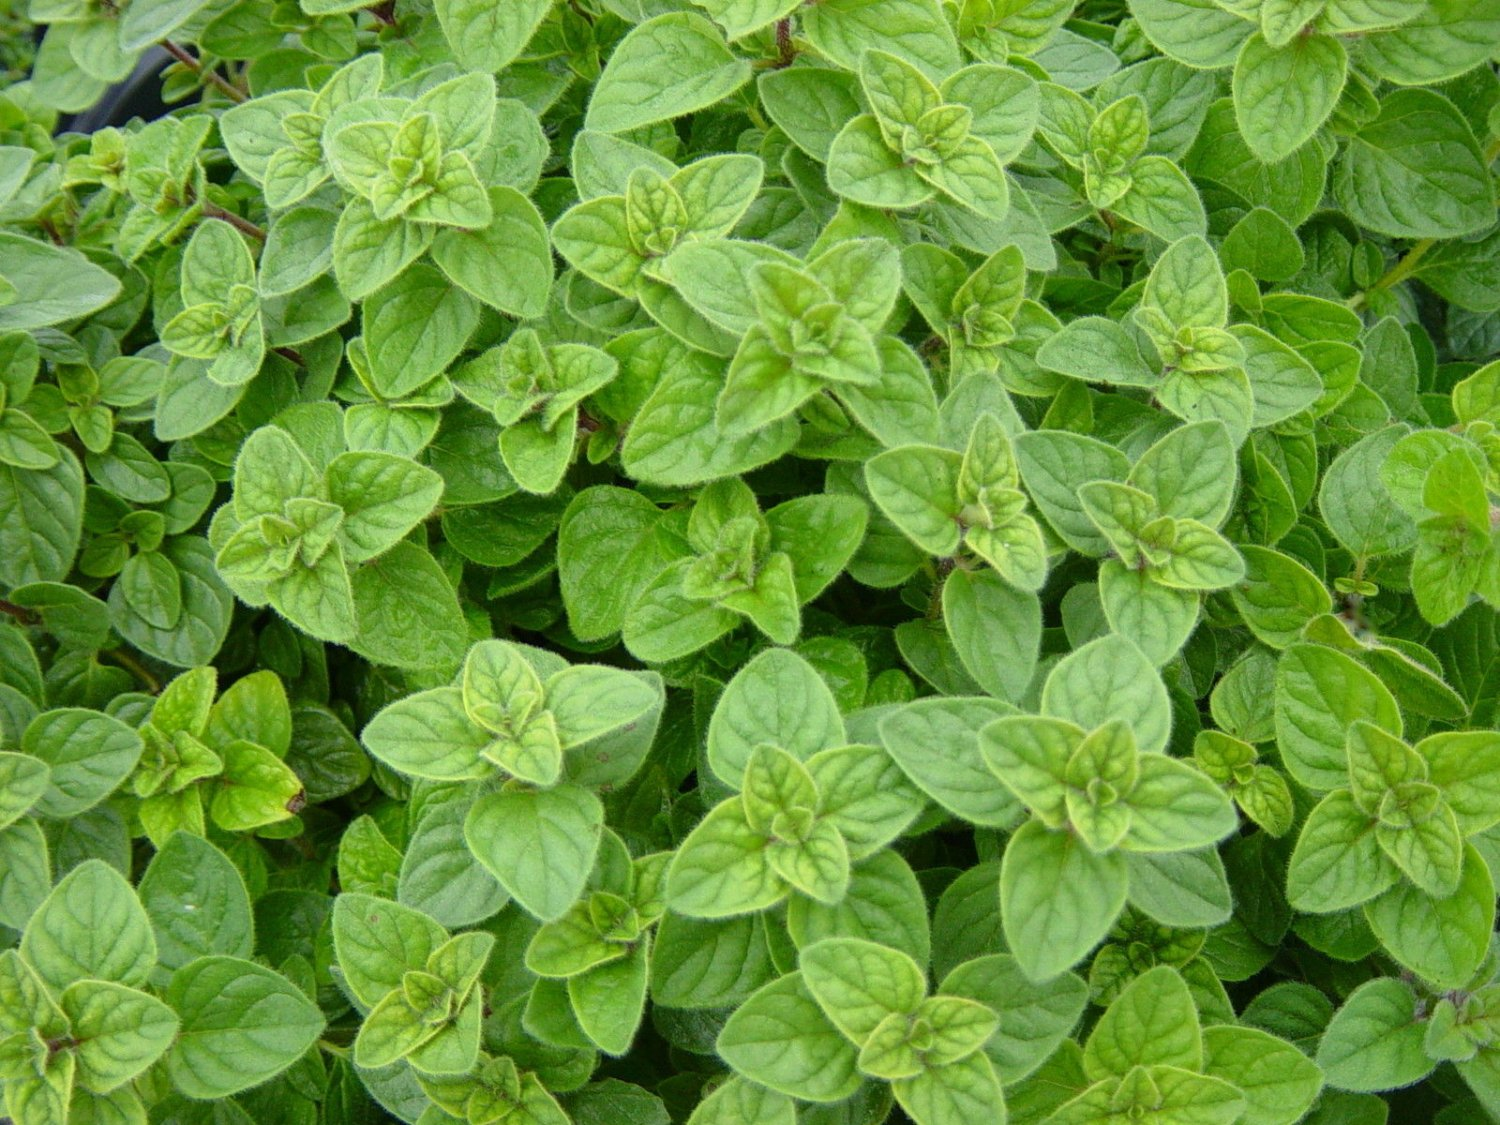 100 Oregano Seeds, Greek, Heirloom Herb, Non-Gmo, Most Flavorful & Aromatic, 100ct